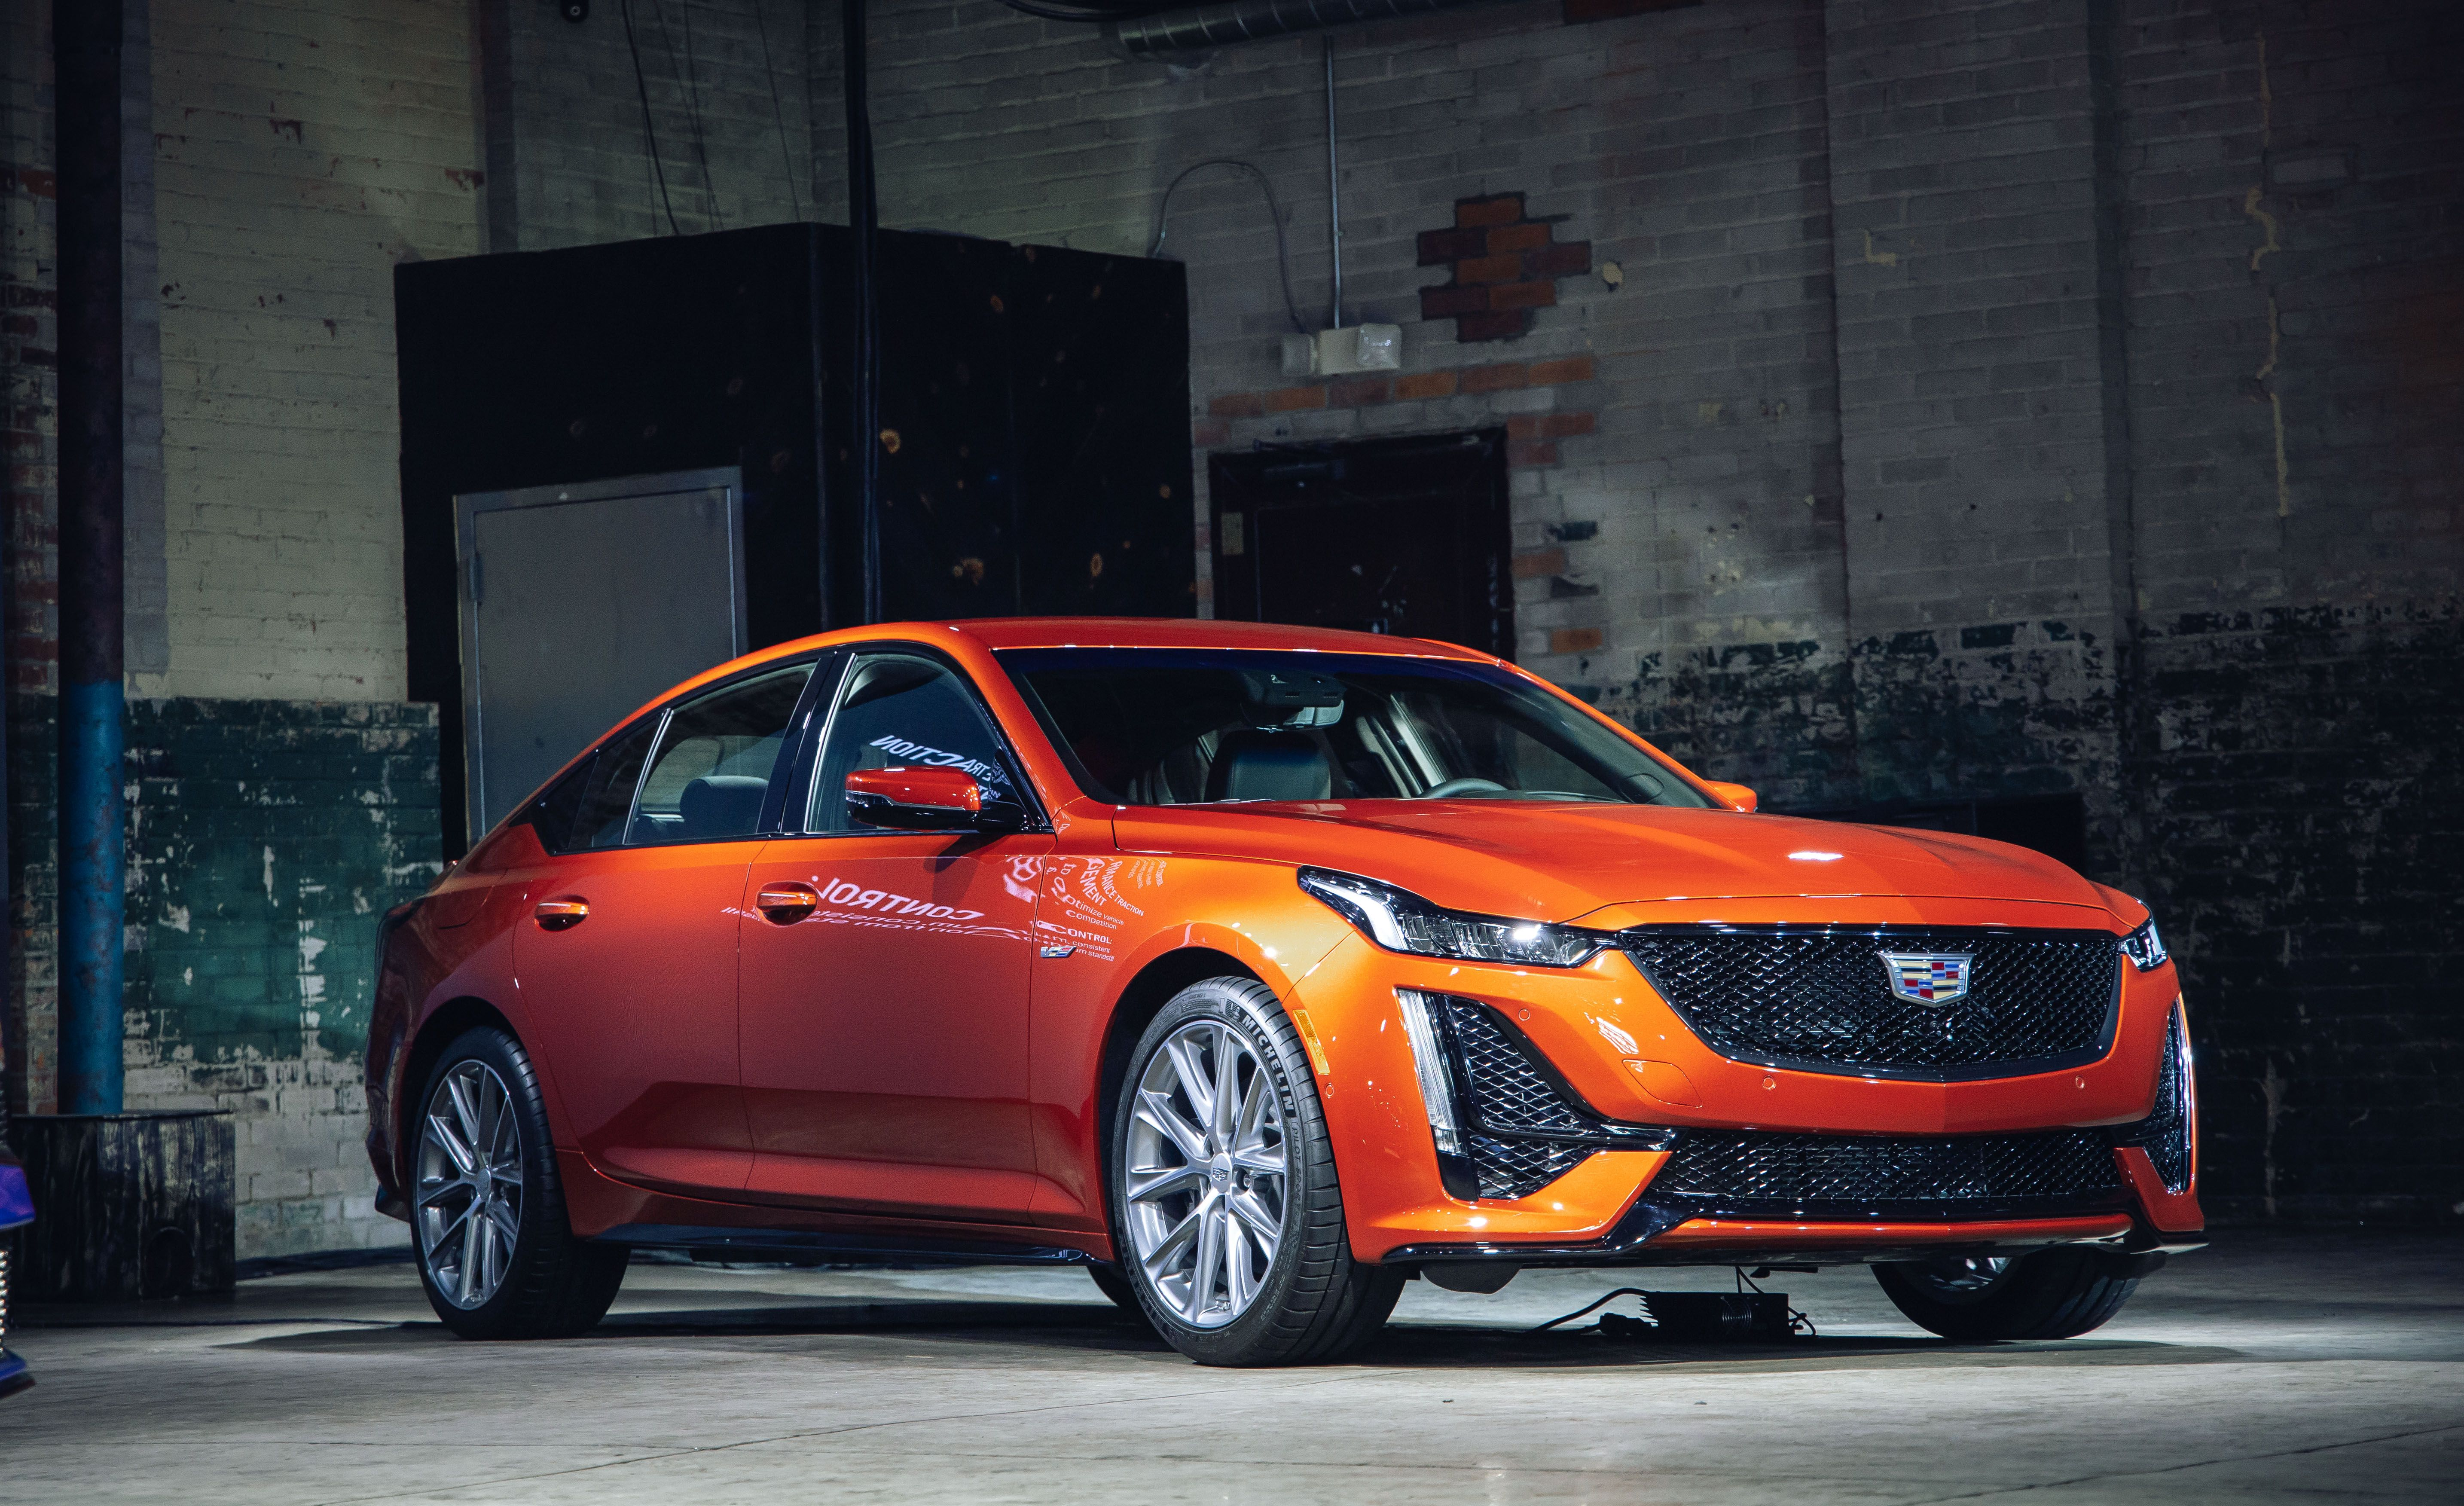 2020 Cadillac Ct5 V New Sedan Gets Performance Trim